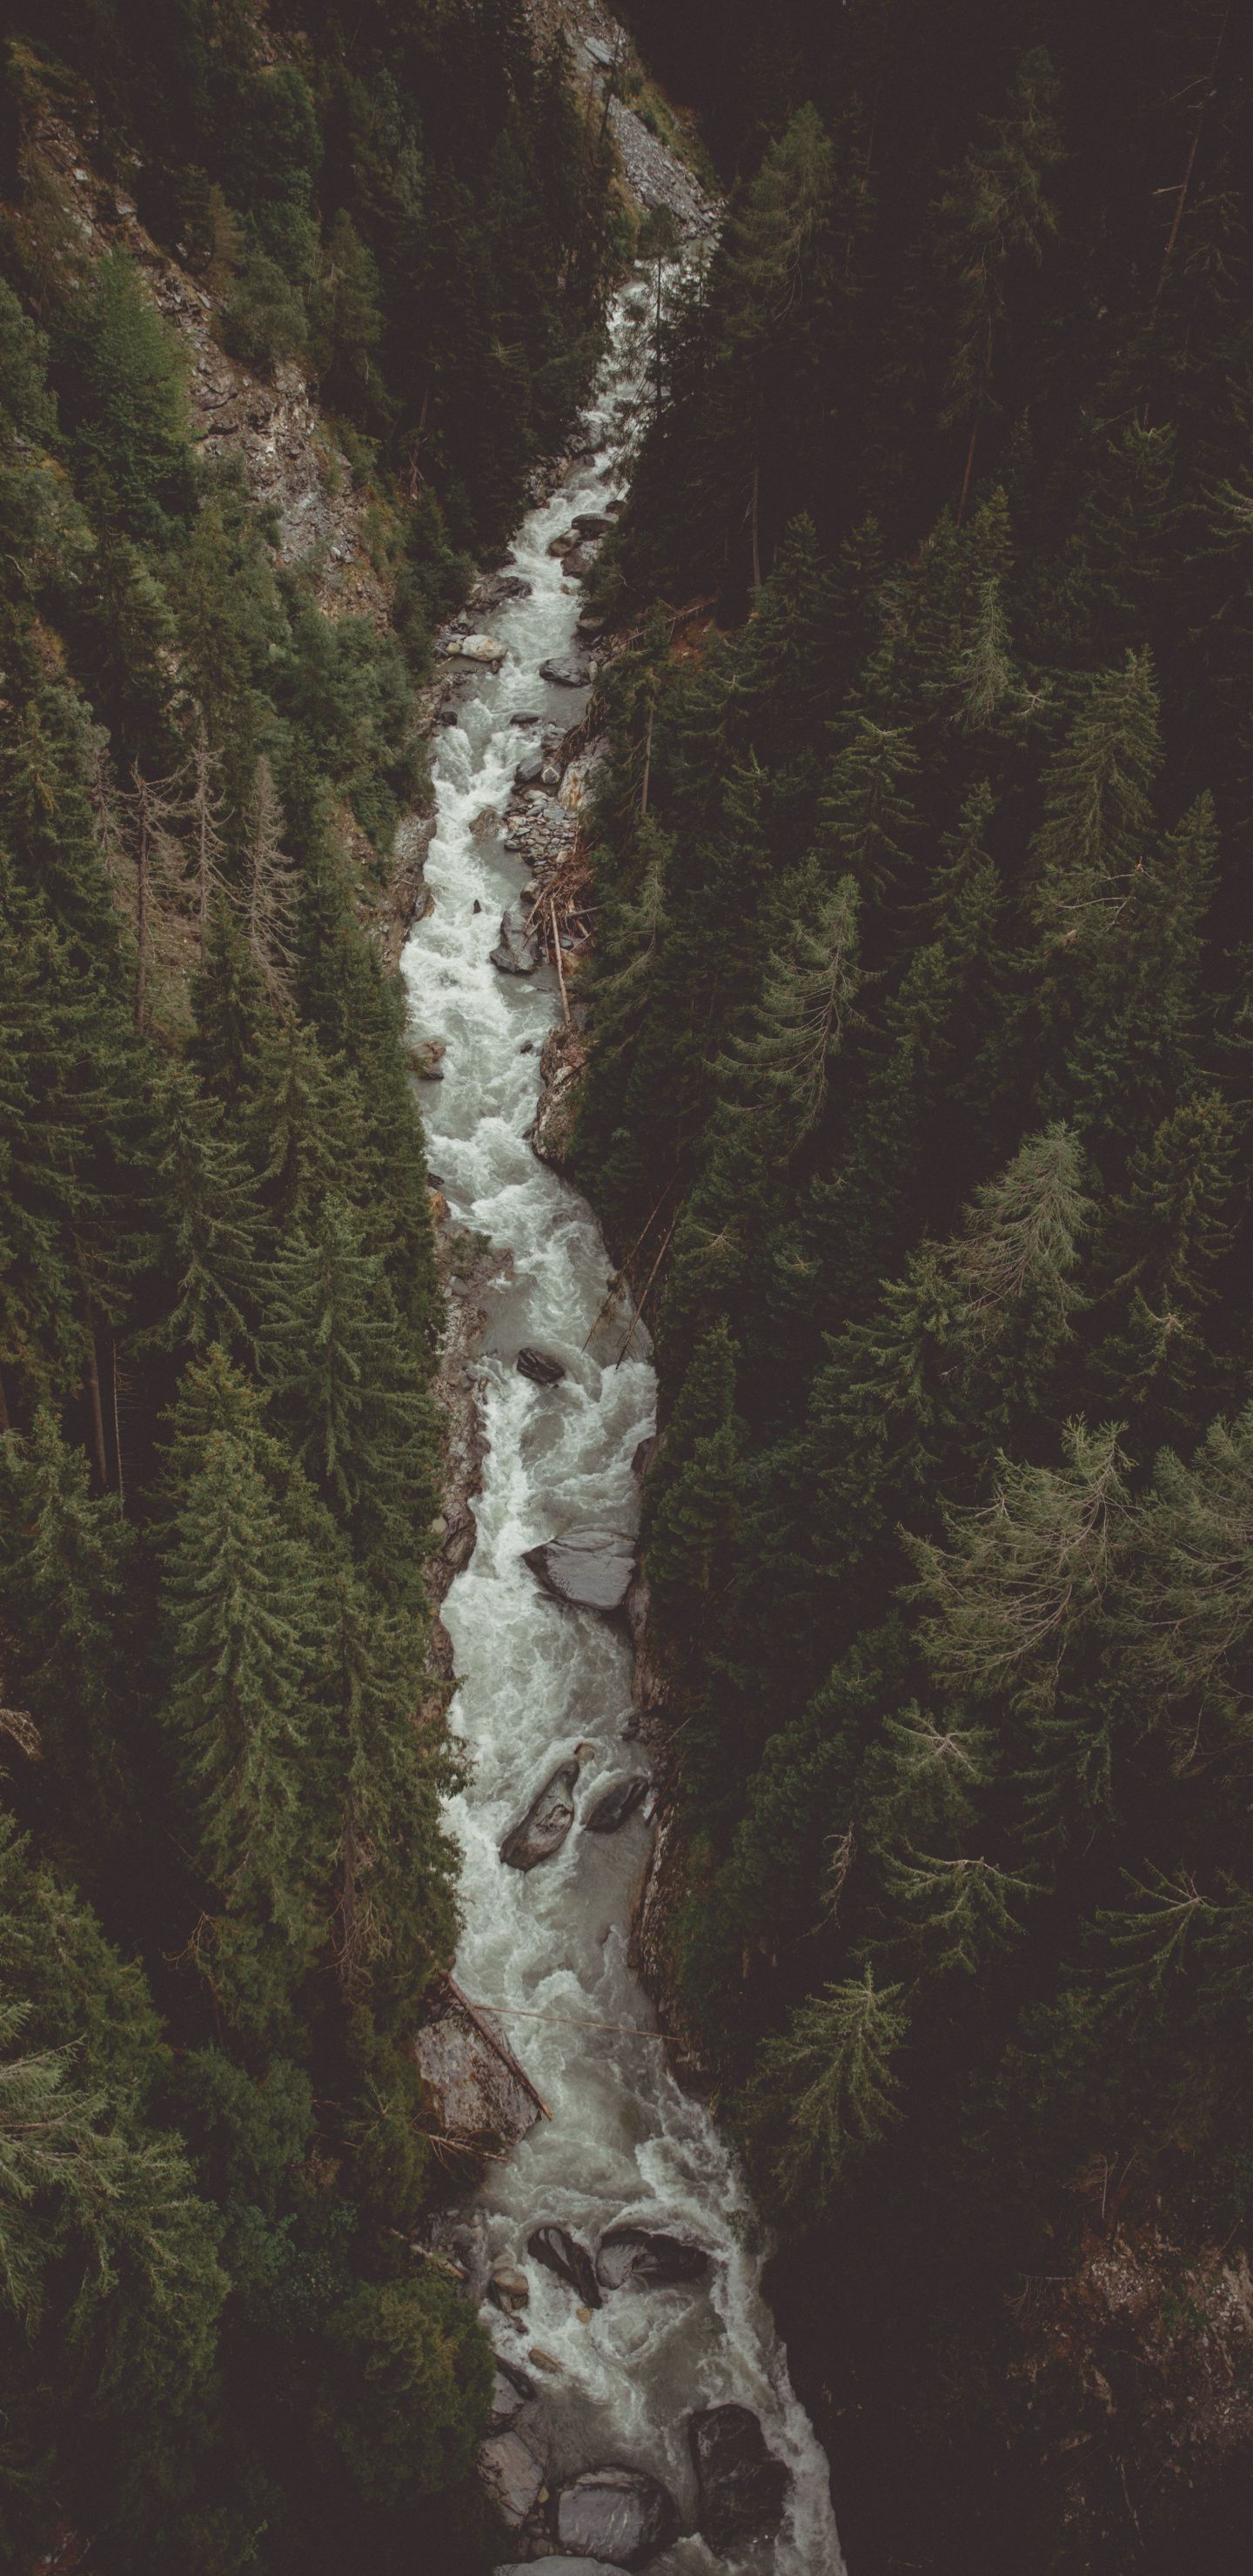 1440x2960 River Water Stream Forest Nature Aerial View Wallpaper River Photography Aerial View View Wallpaper